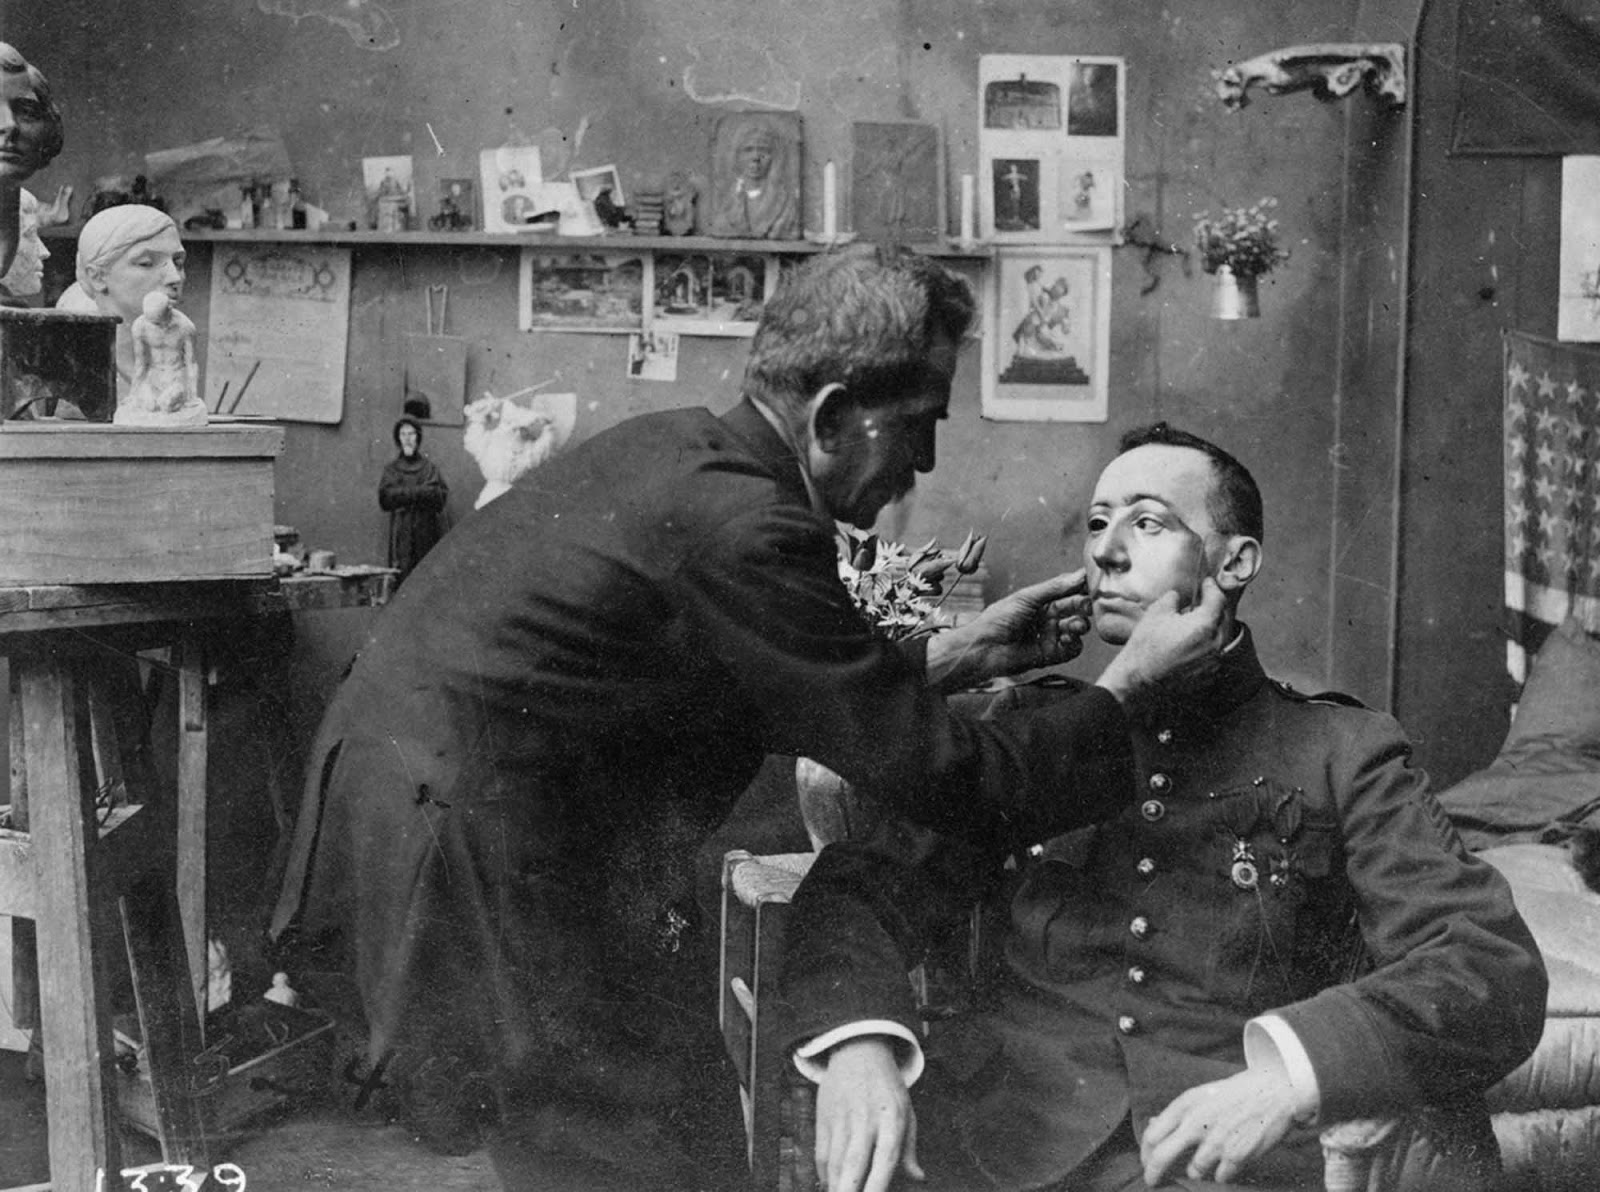 French soldier whose face was mutilated in World War I, being fitted with a mask made at the American Red Cross studio of Anna Coleman Ladd, 1918.